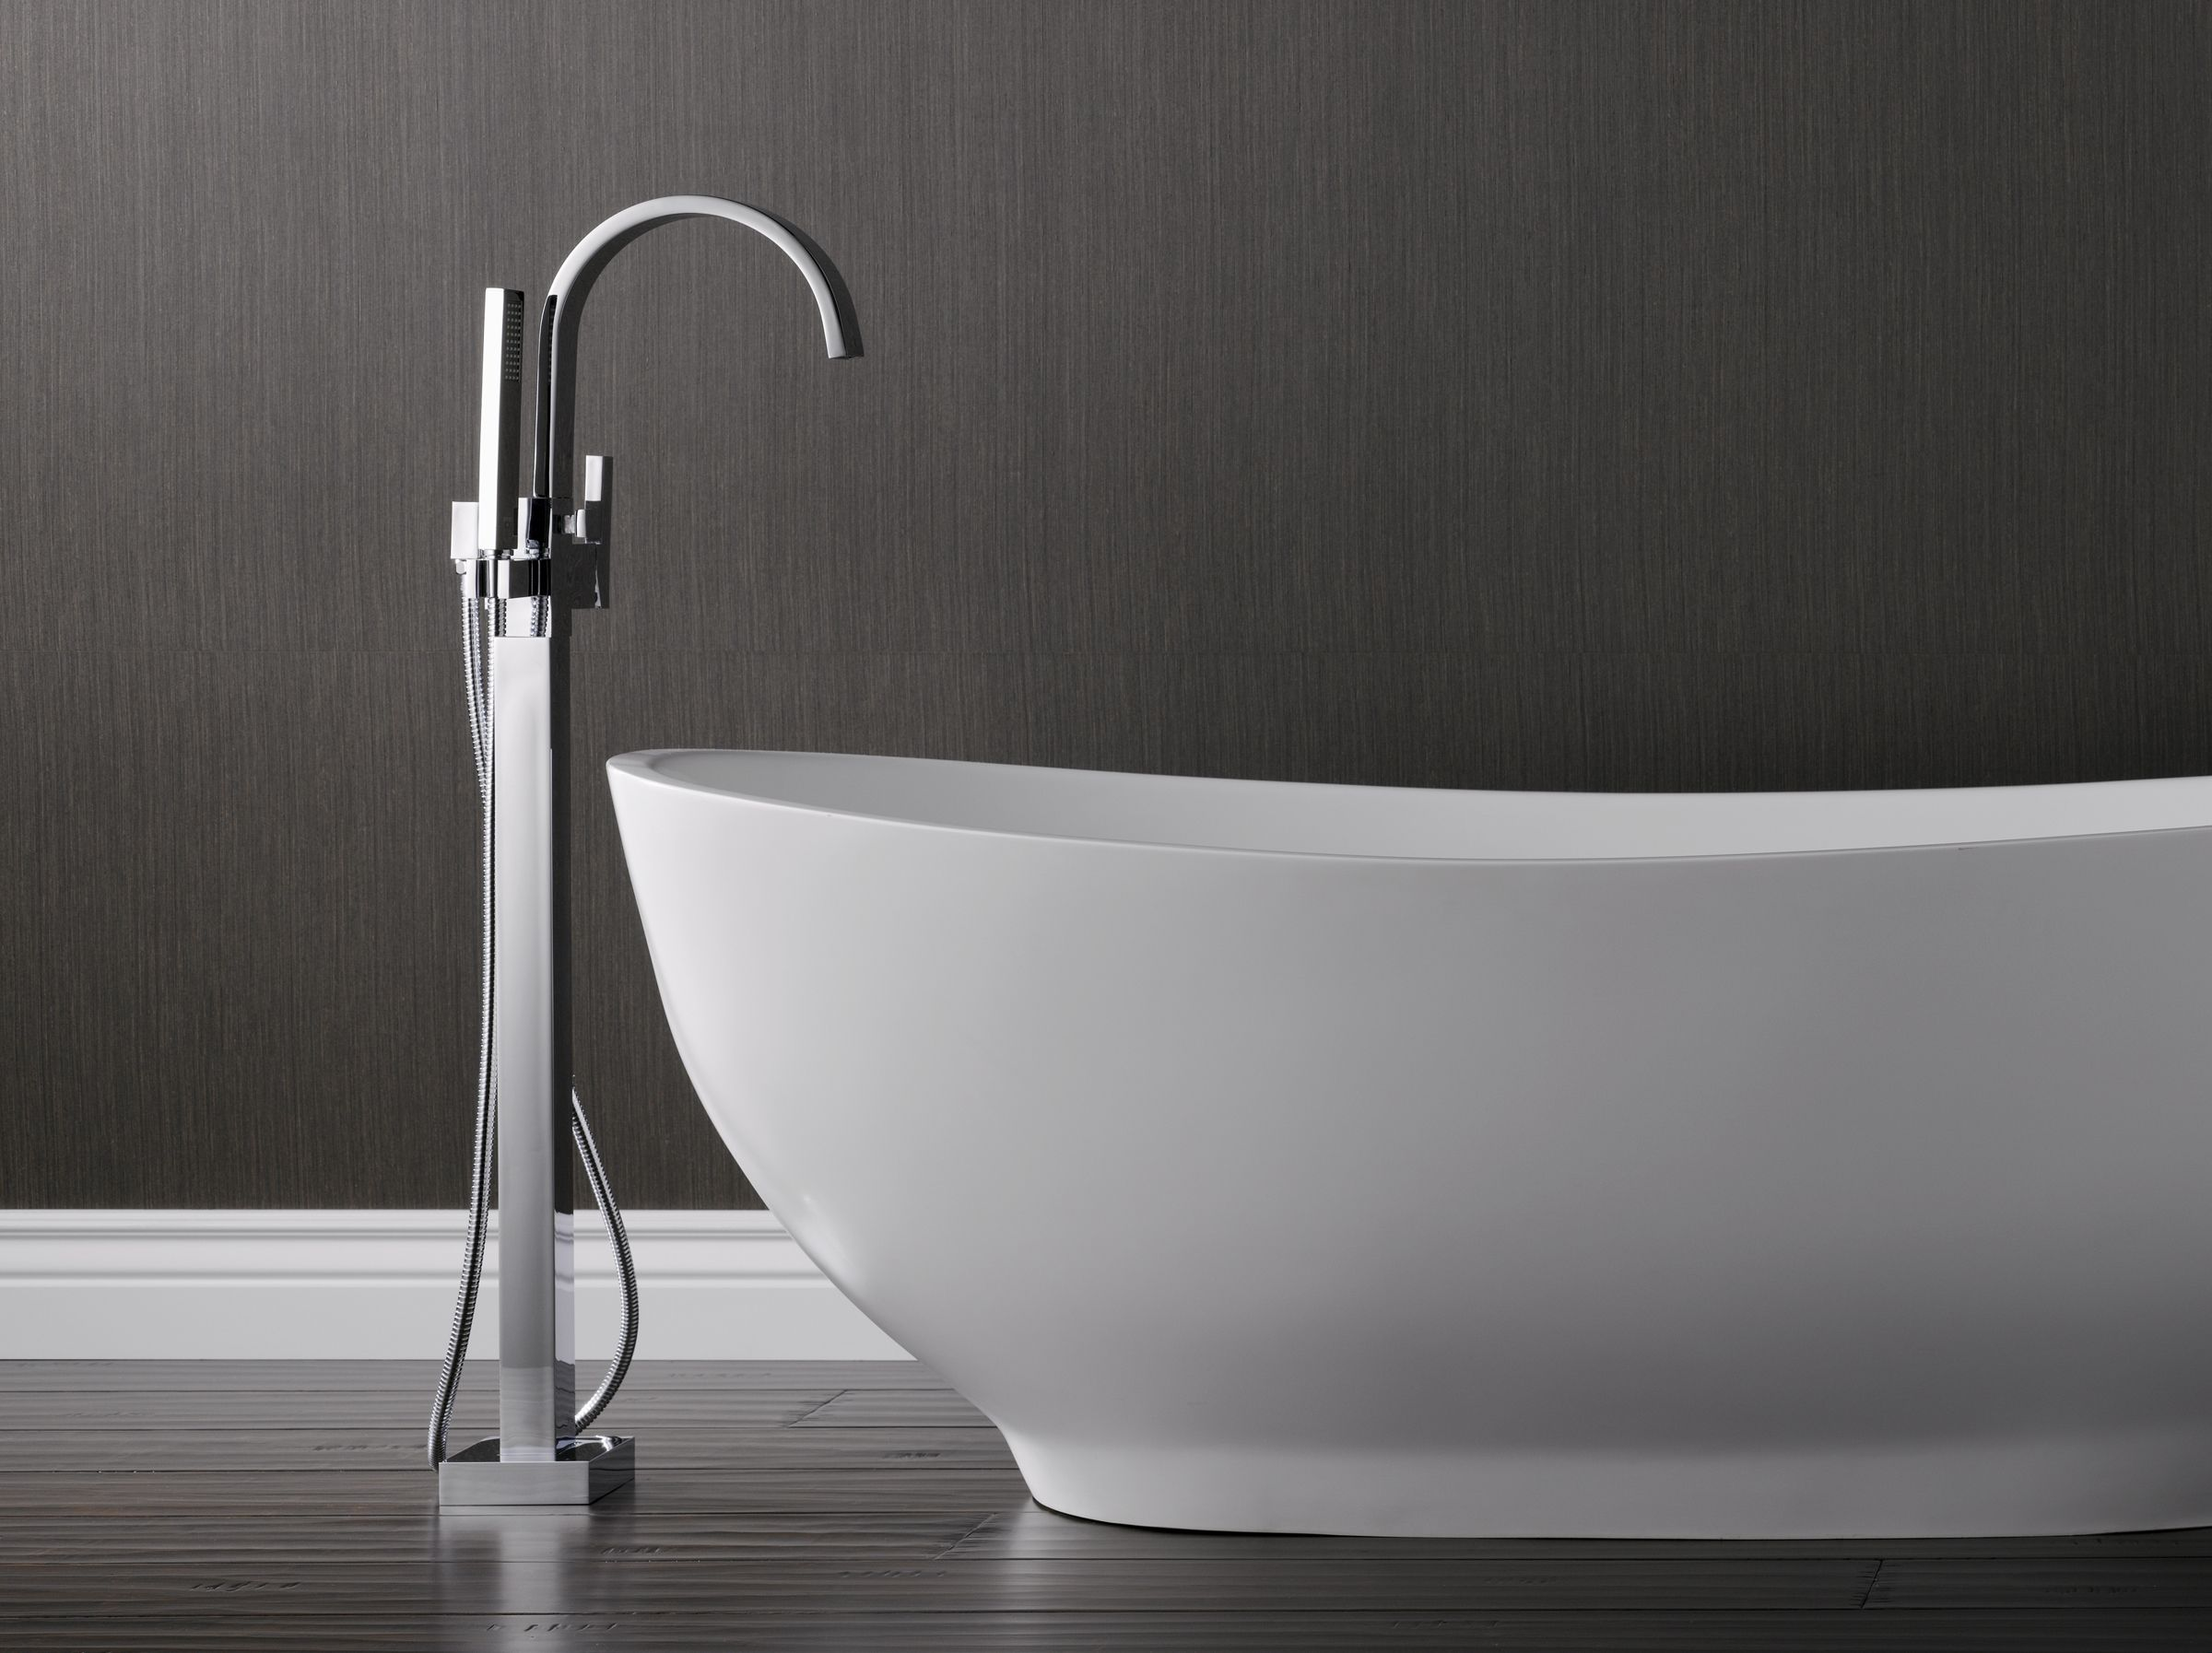 Brizo Freestanding Tub fillers are trending big as a carryover from ...